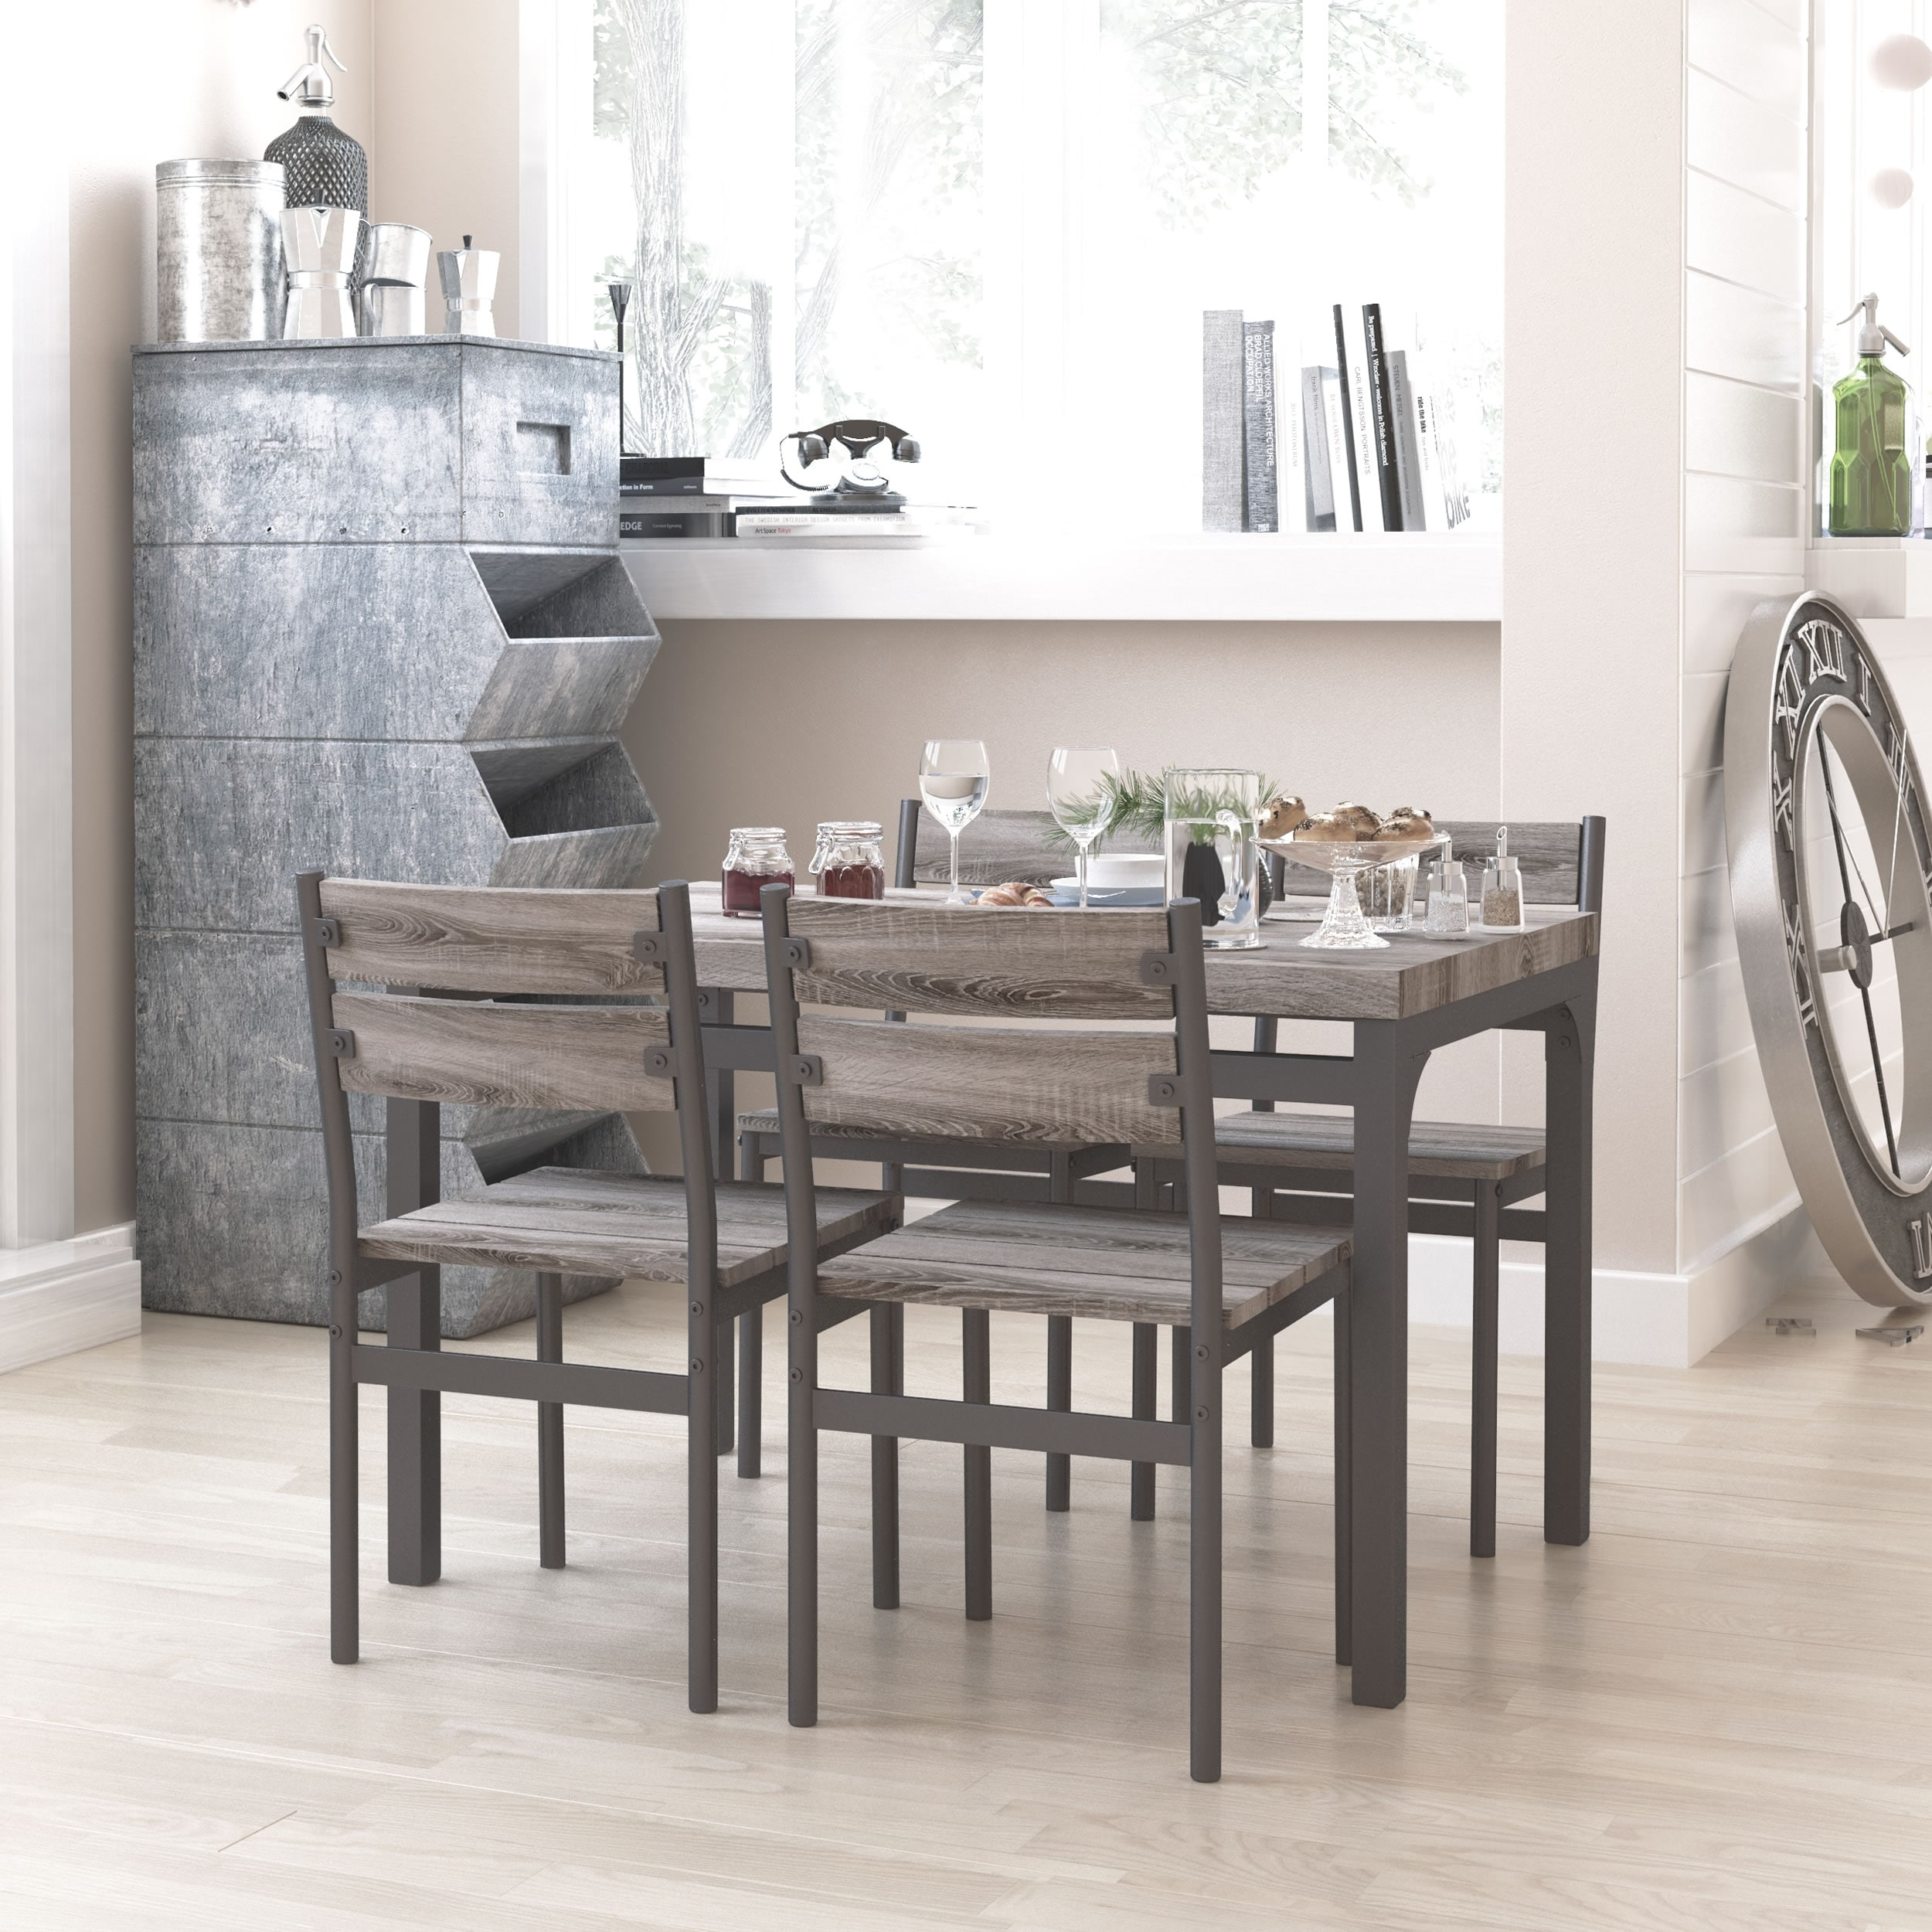 Shop Black Friday Deals On Zenvida 5 Piece Dining Set Rustic Grey Wooden Kitchen Table And 4 Chairs On Sale Overstock 21803691